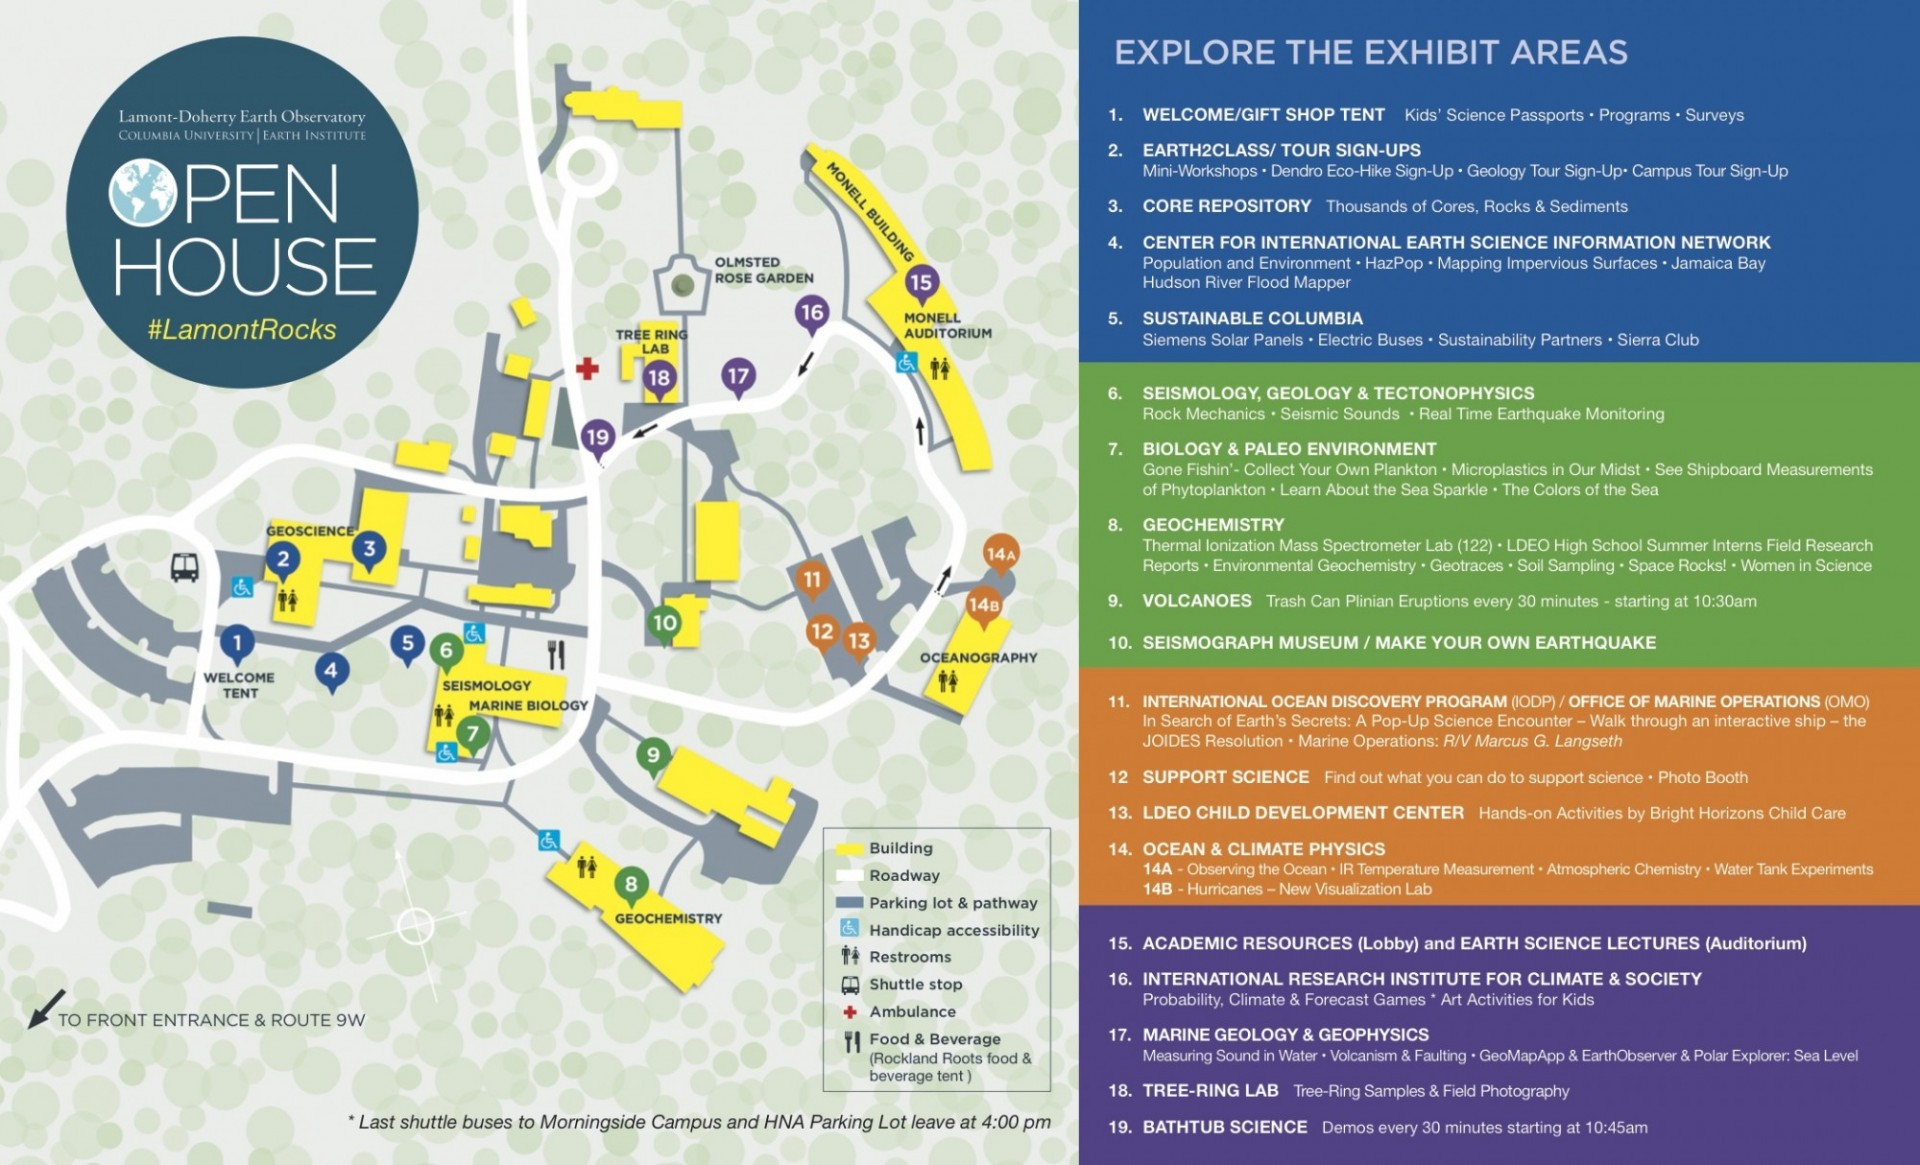 map of Open House exhibit areas